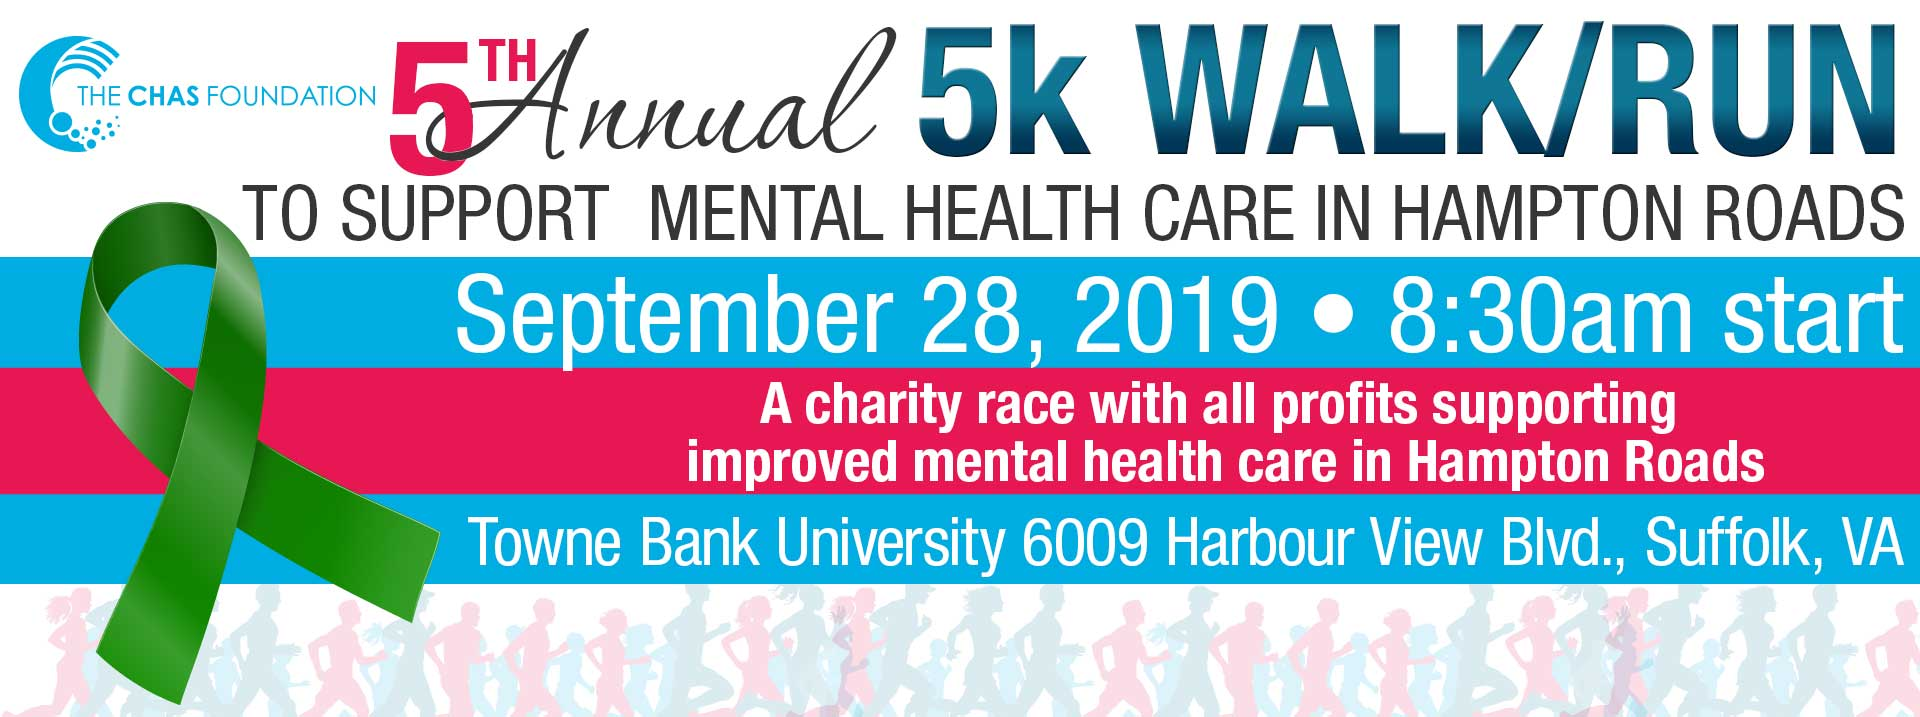 5th Annual Chas Foundation 5K Walk/Run